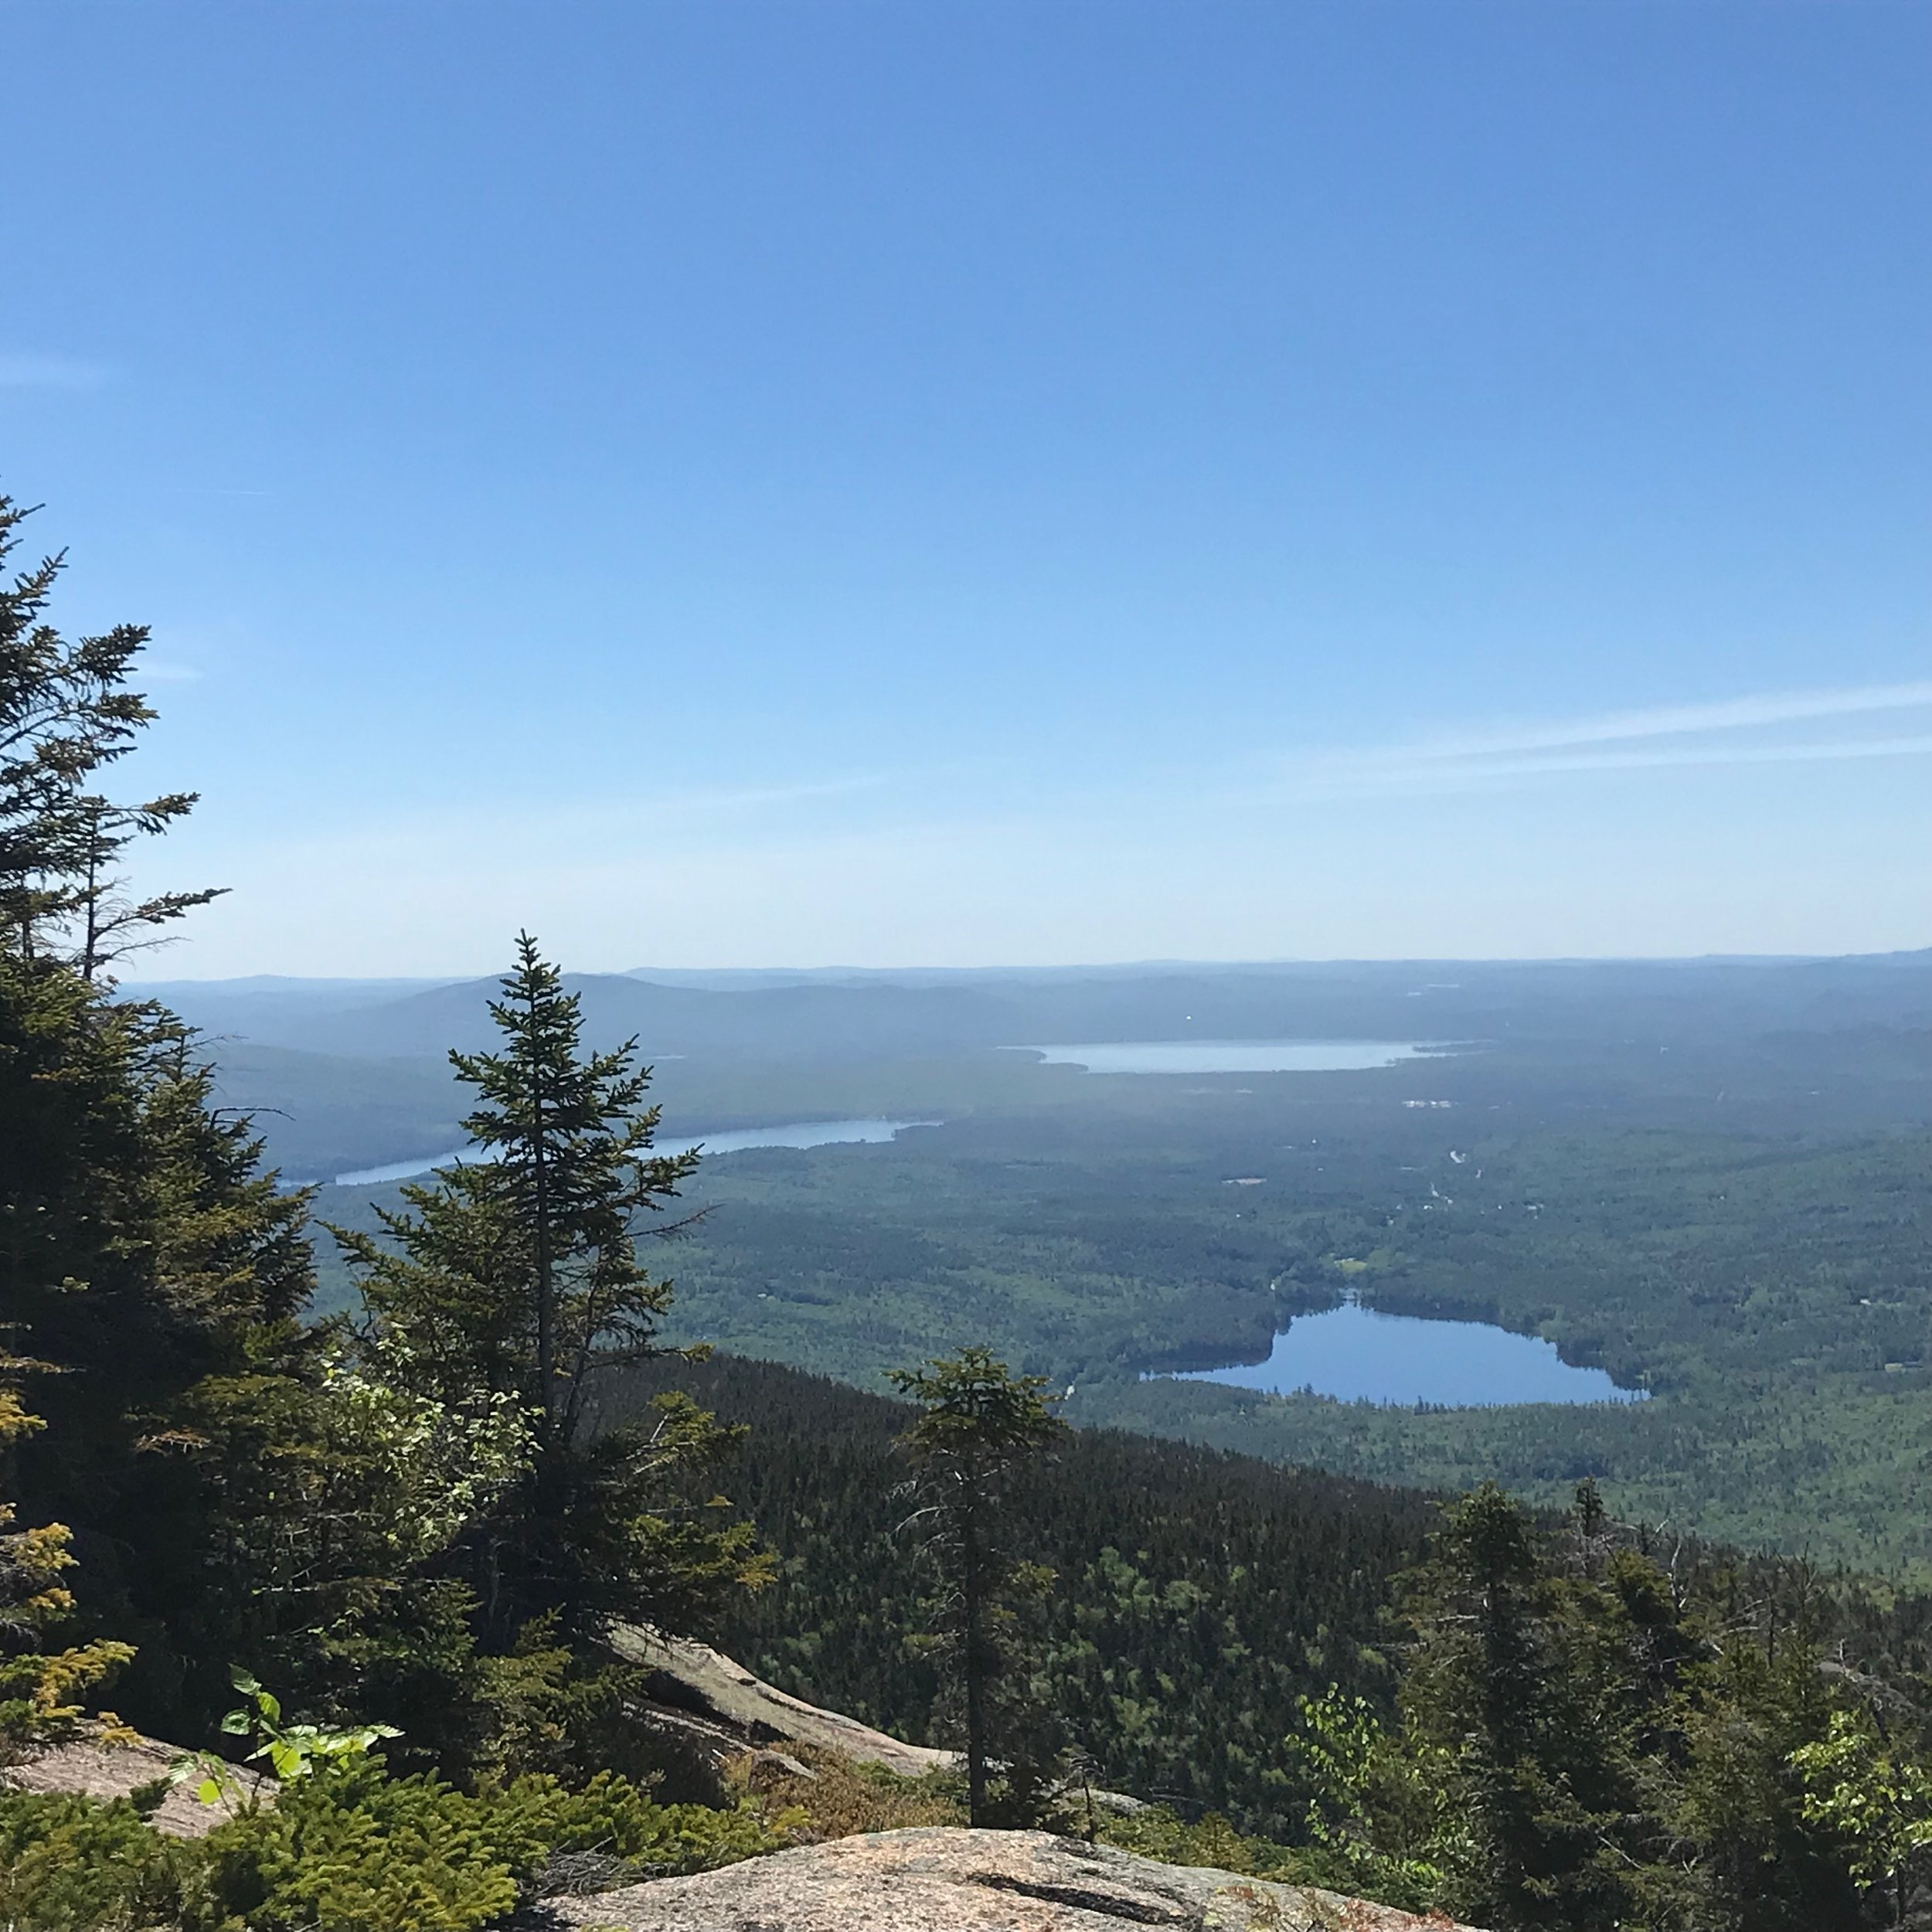 Chocorua Lake, with its wooded shores, and the lake basin from above, with Silver and Ossipee Lakes in the distance. Photo: Juno Lamb